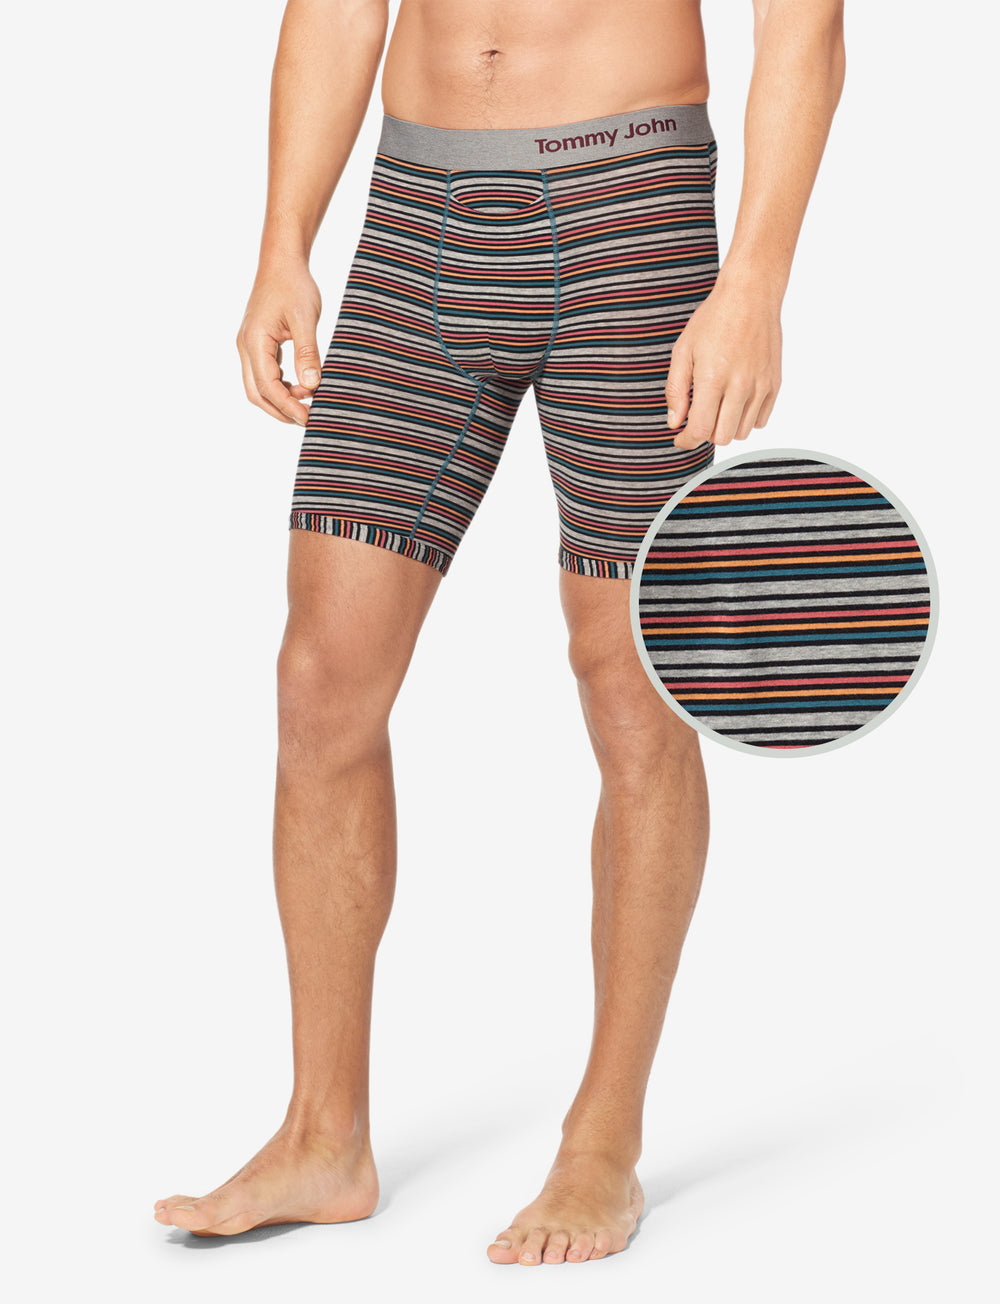 Cool Cotton Stripe Boxer Brief Details Image